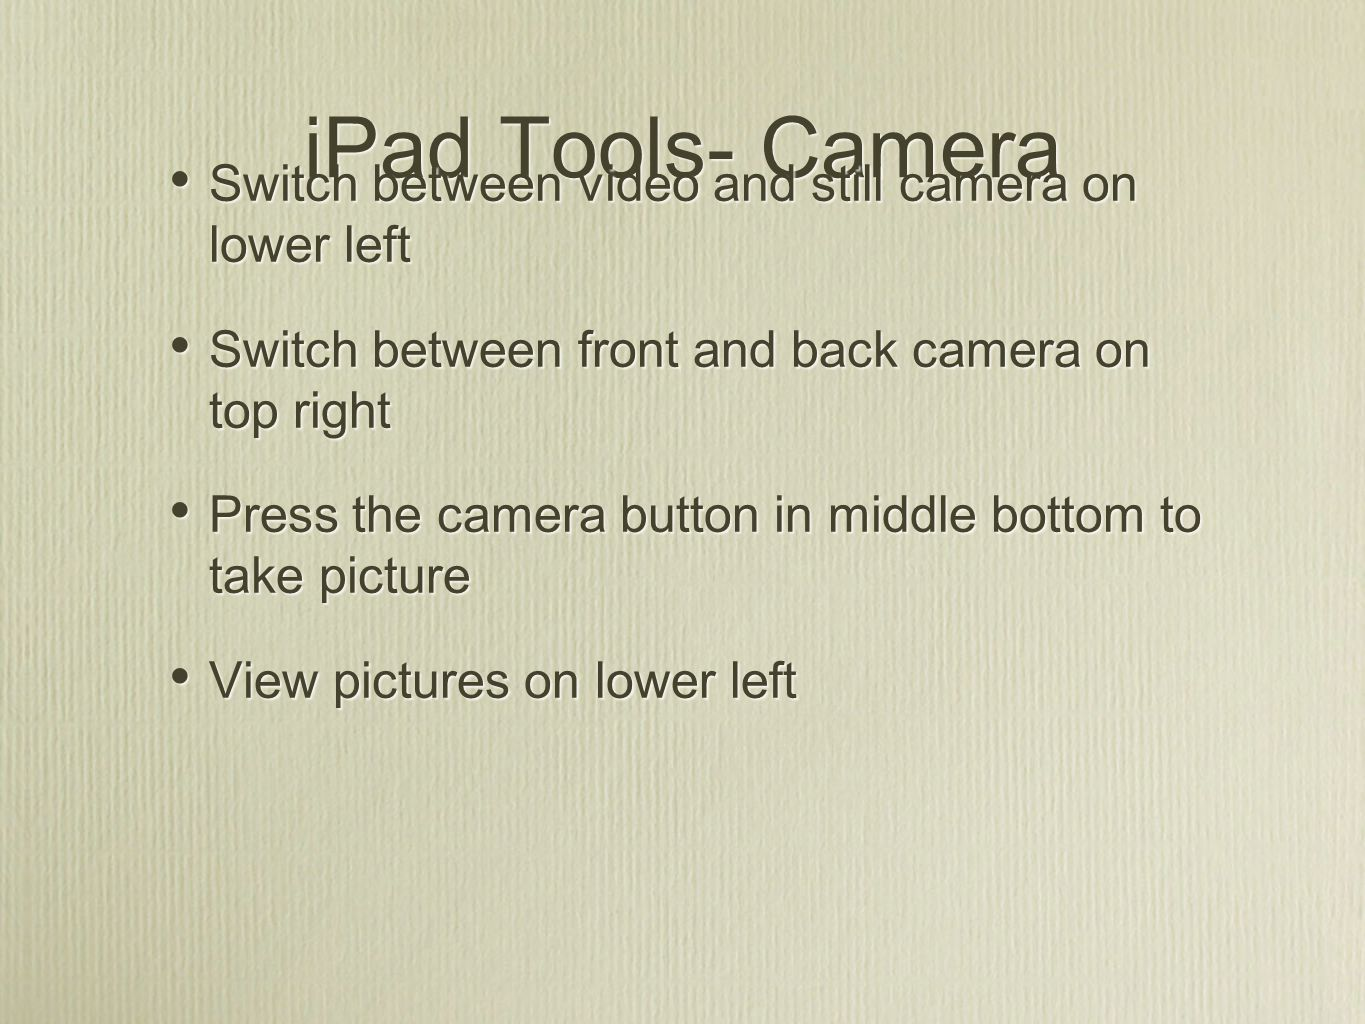 iPad Tools- Camera Switch between video and still camera on lower left Switch between front and back camera on top right Press the camera button in middle bottom to take picture View pictures on lower left Switch between video and still camera on lower left Switch between front and back camera on top right Press the camera button in middle bottom to take picture View pictures on lower left